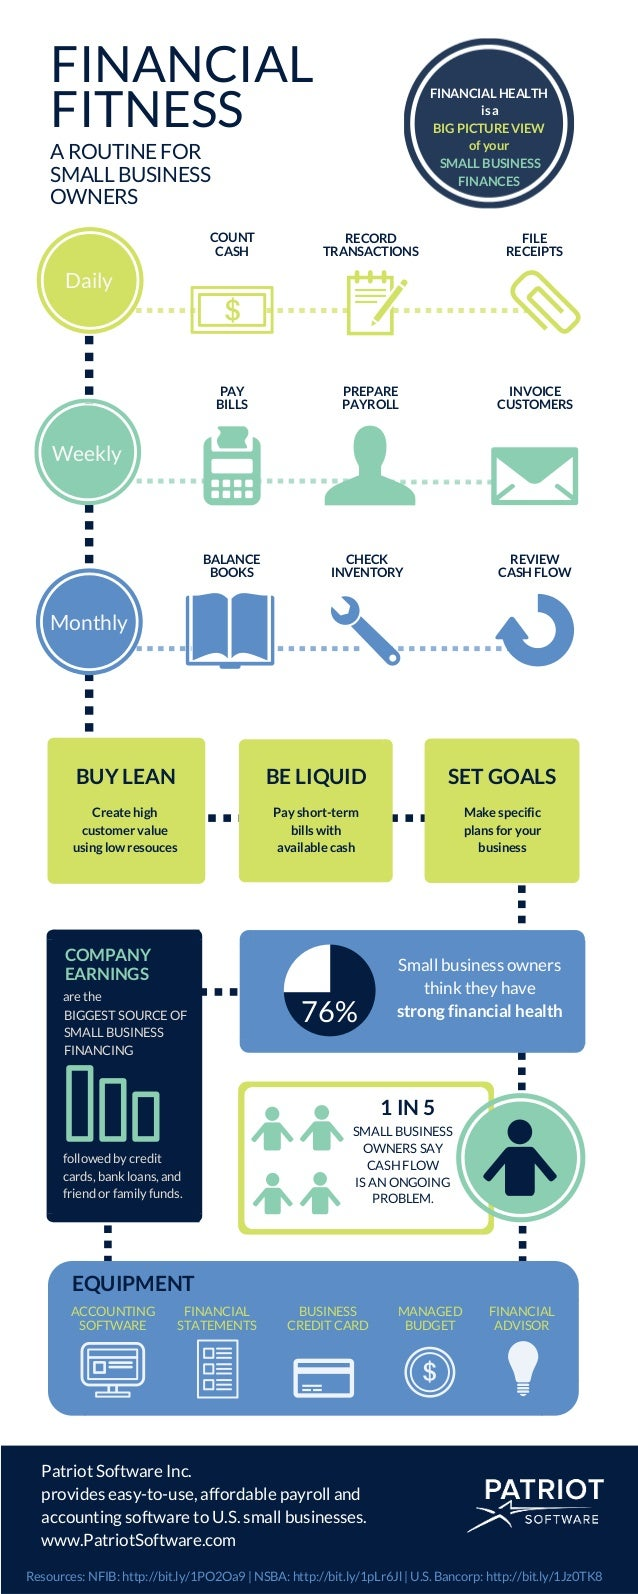 Financial Fitness Infographic - A Routine for Small Business Owners